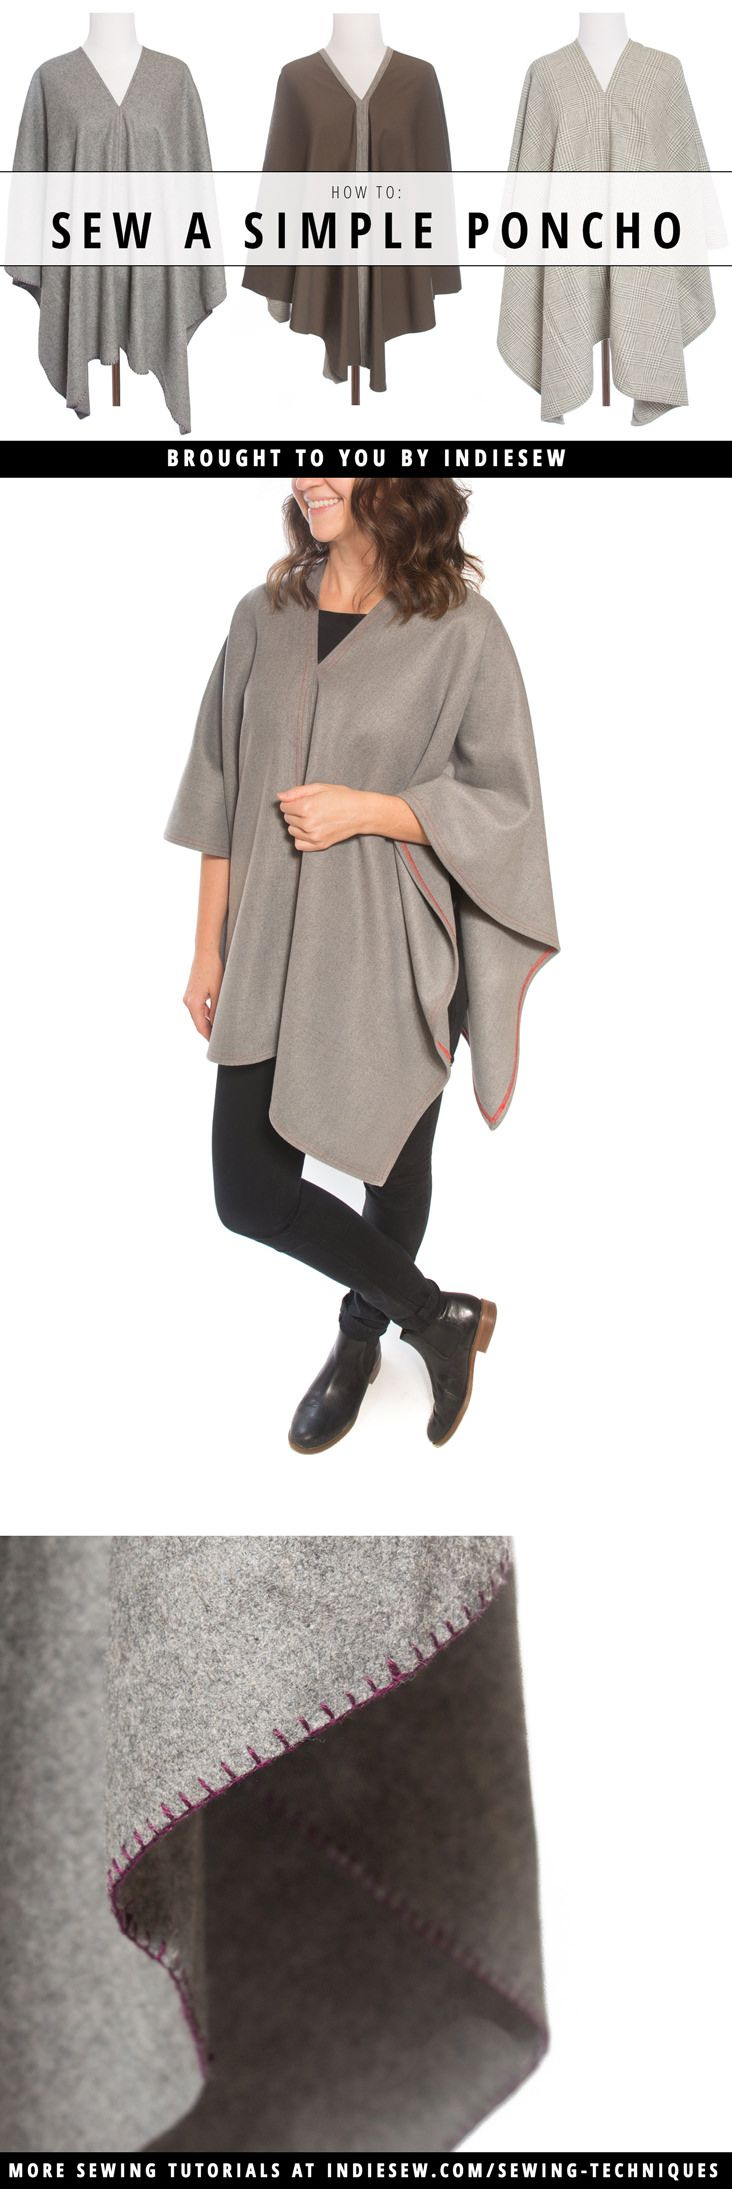 Two rectangles of fabric and a few straight seams is all it takes to make your own cozy winter poncho. Get the step-by-step instructions on the blog!   Indiesew.com